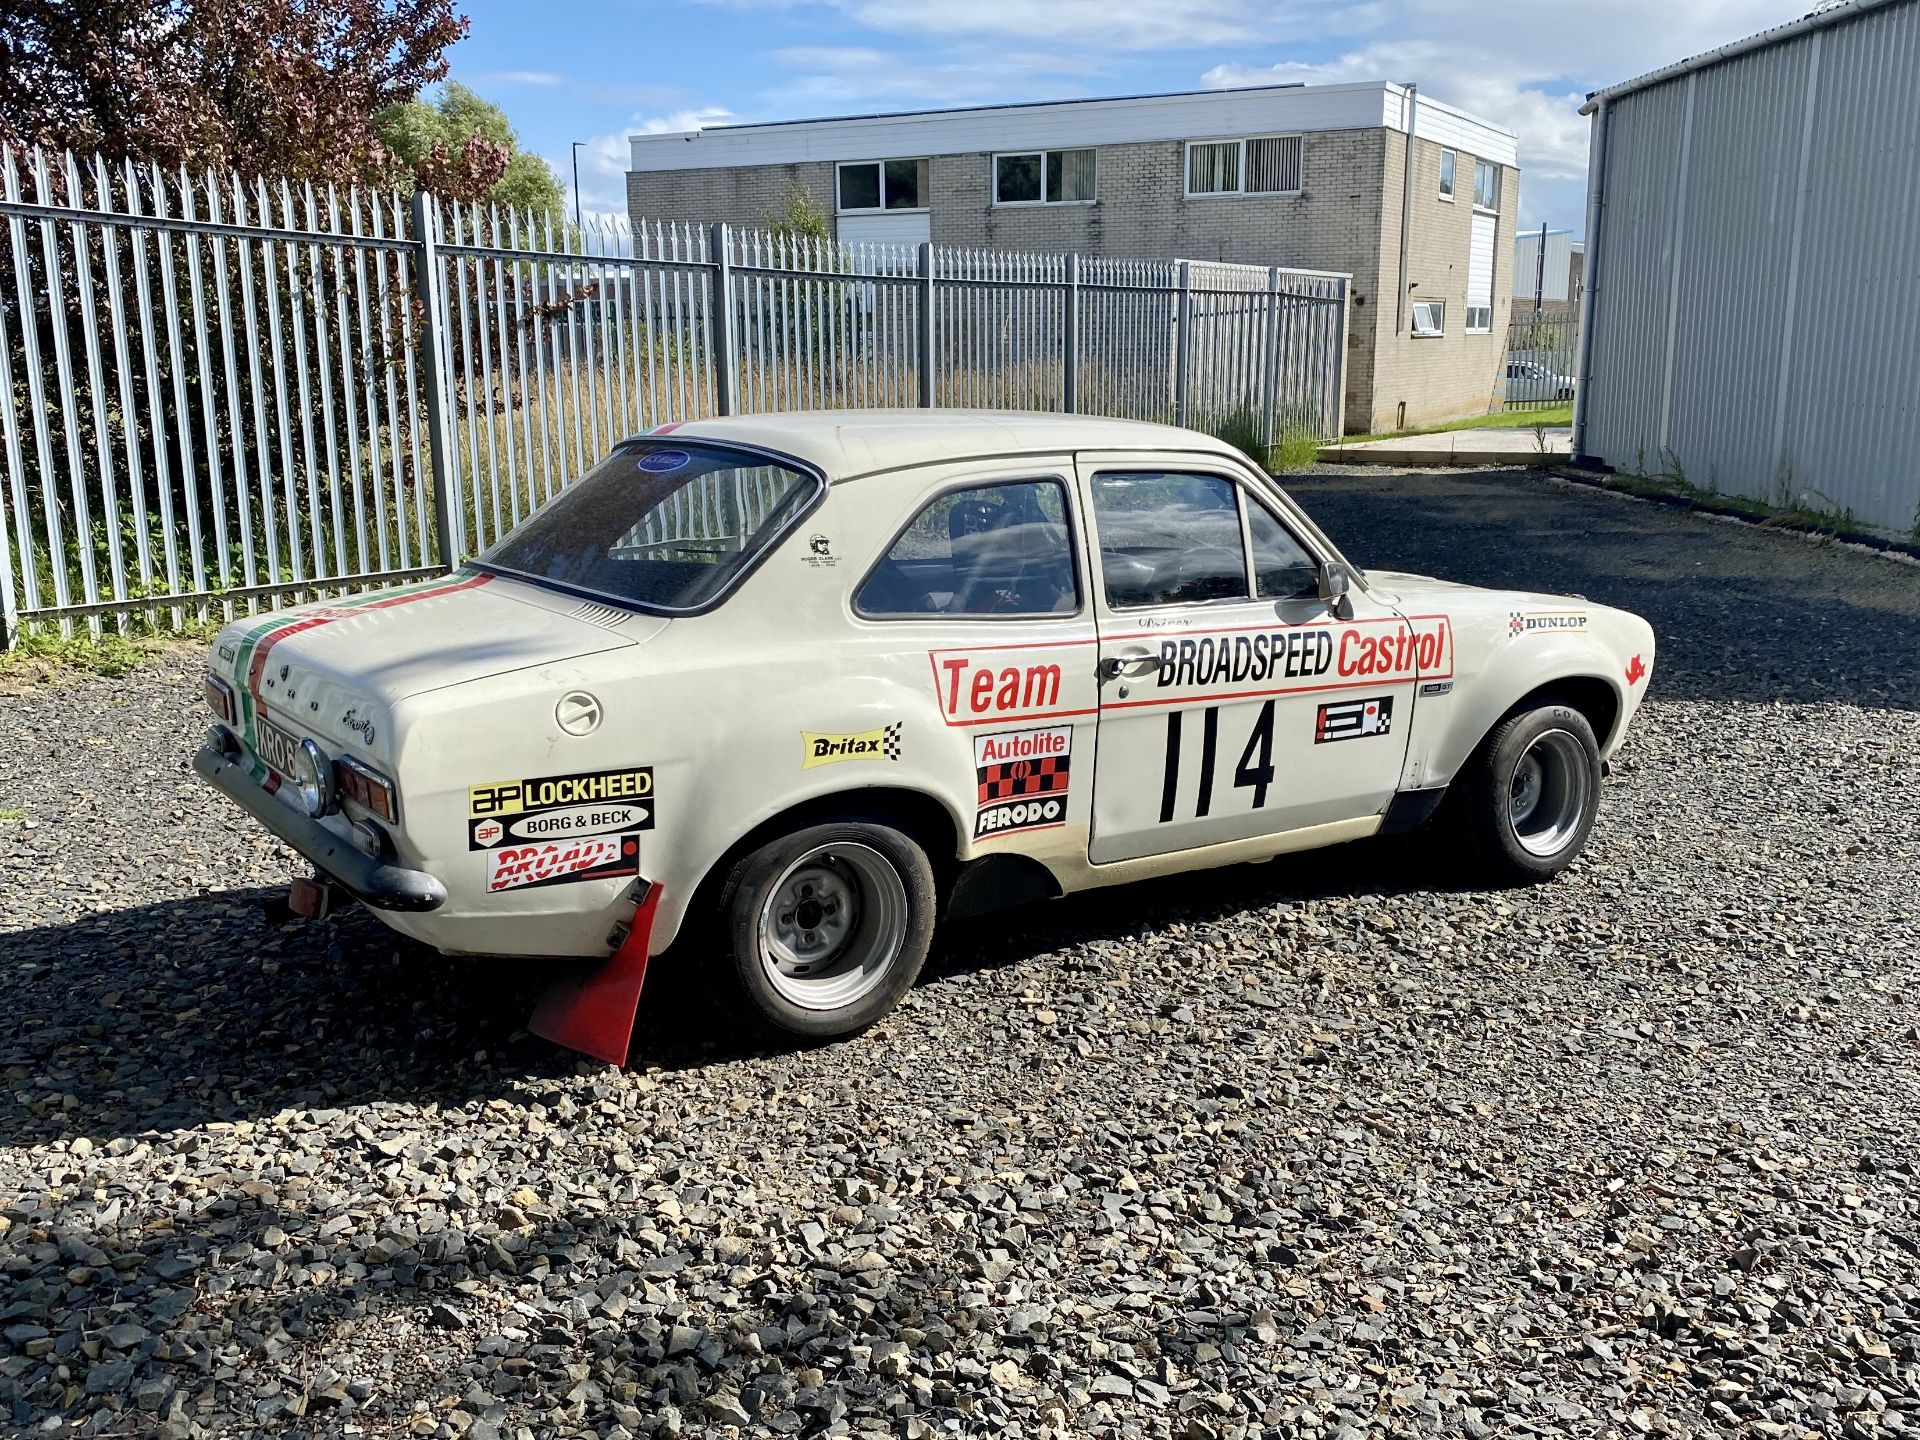 Ford Escort Mexico - Image 17 of 51